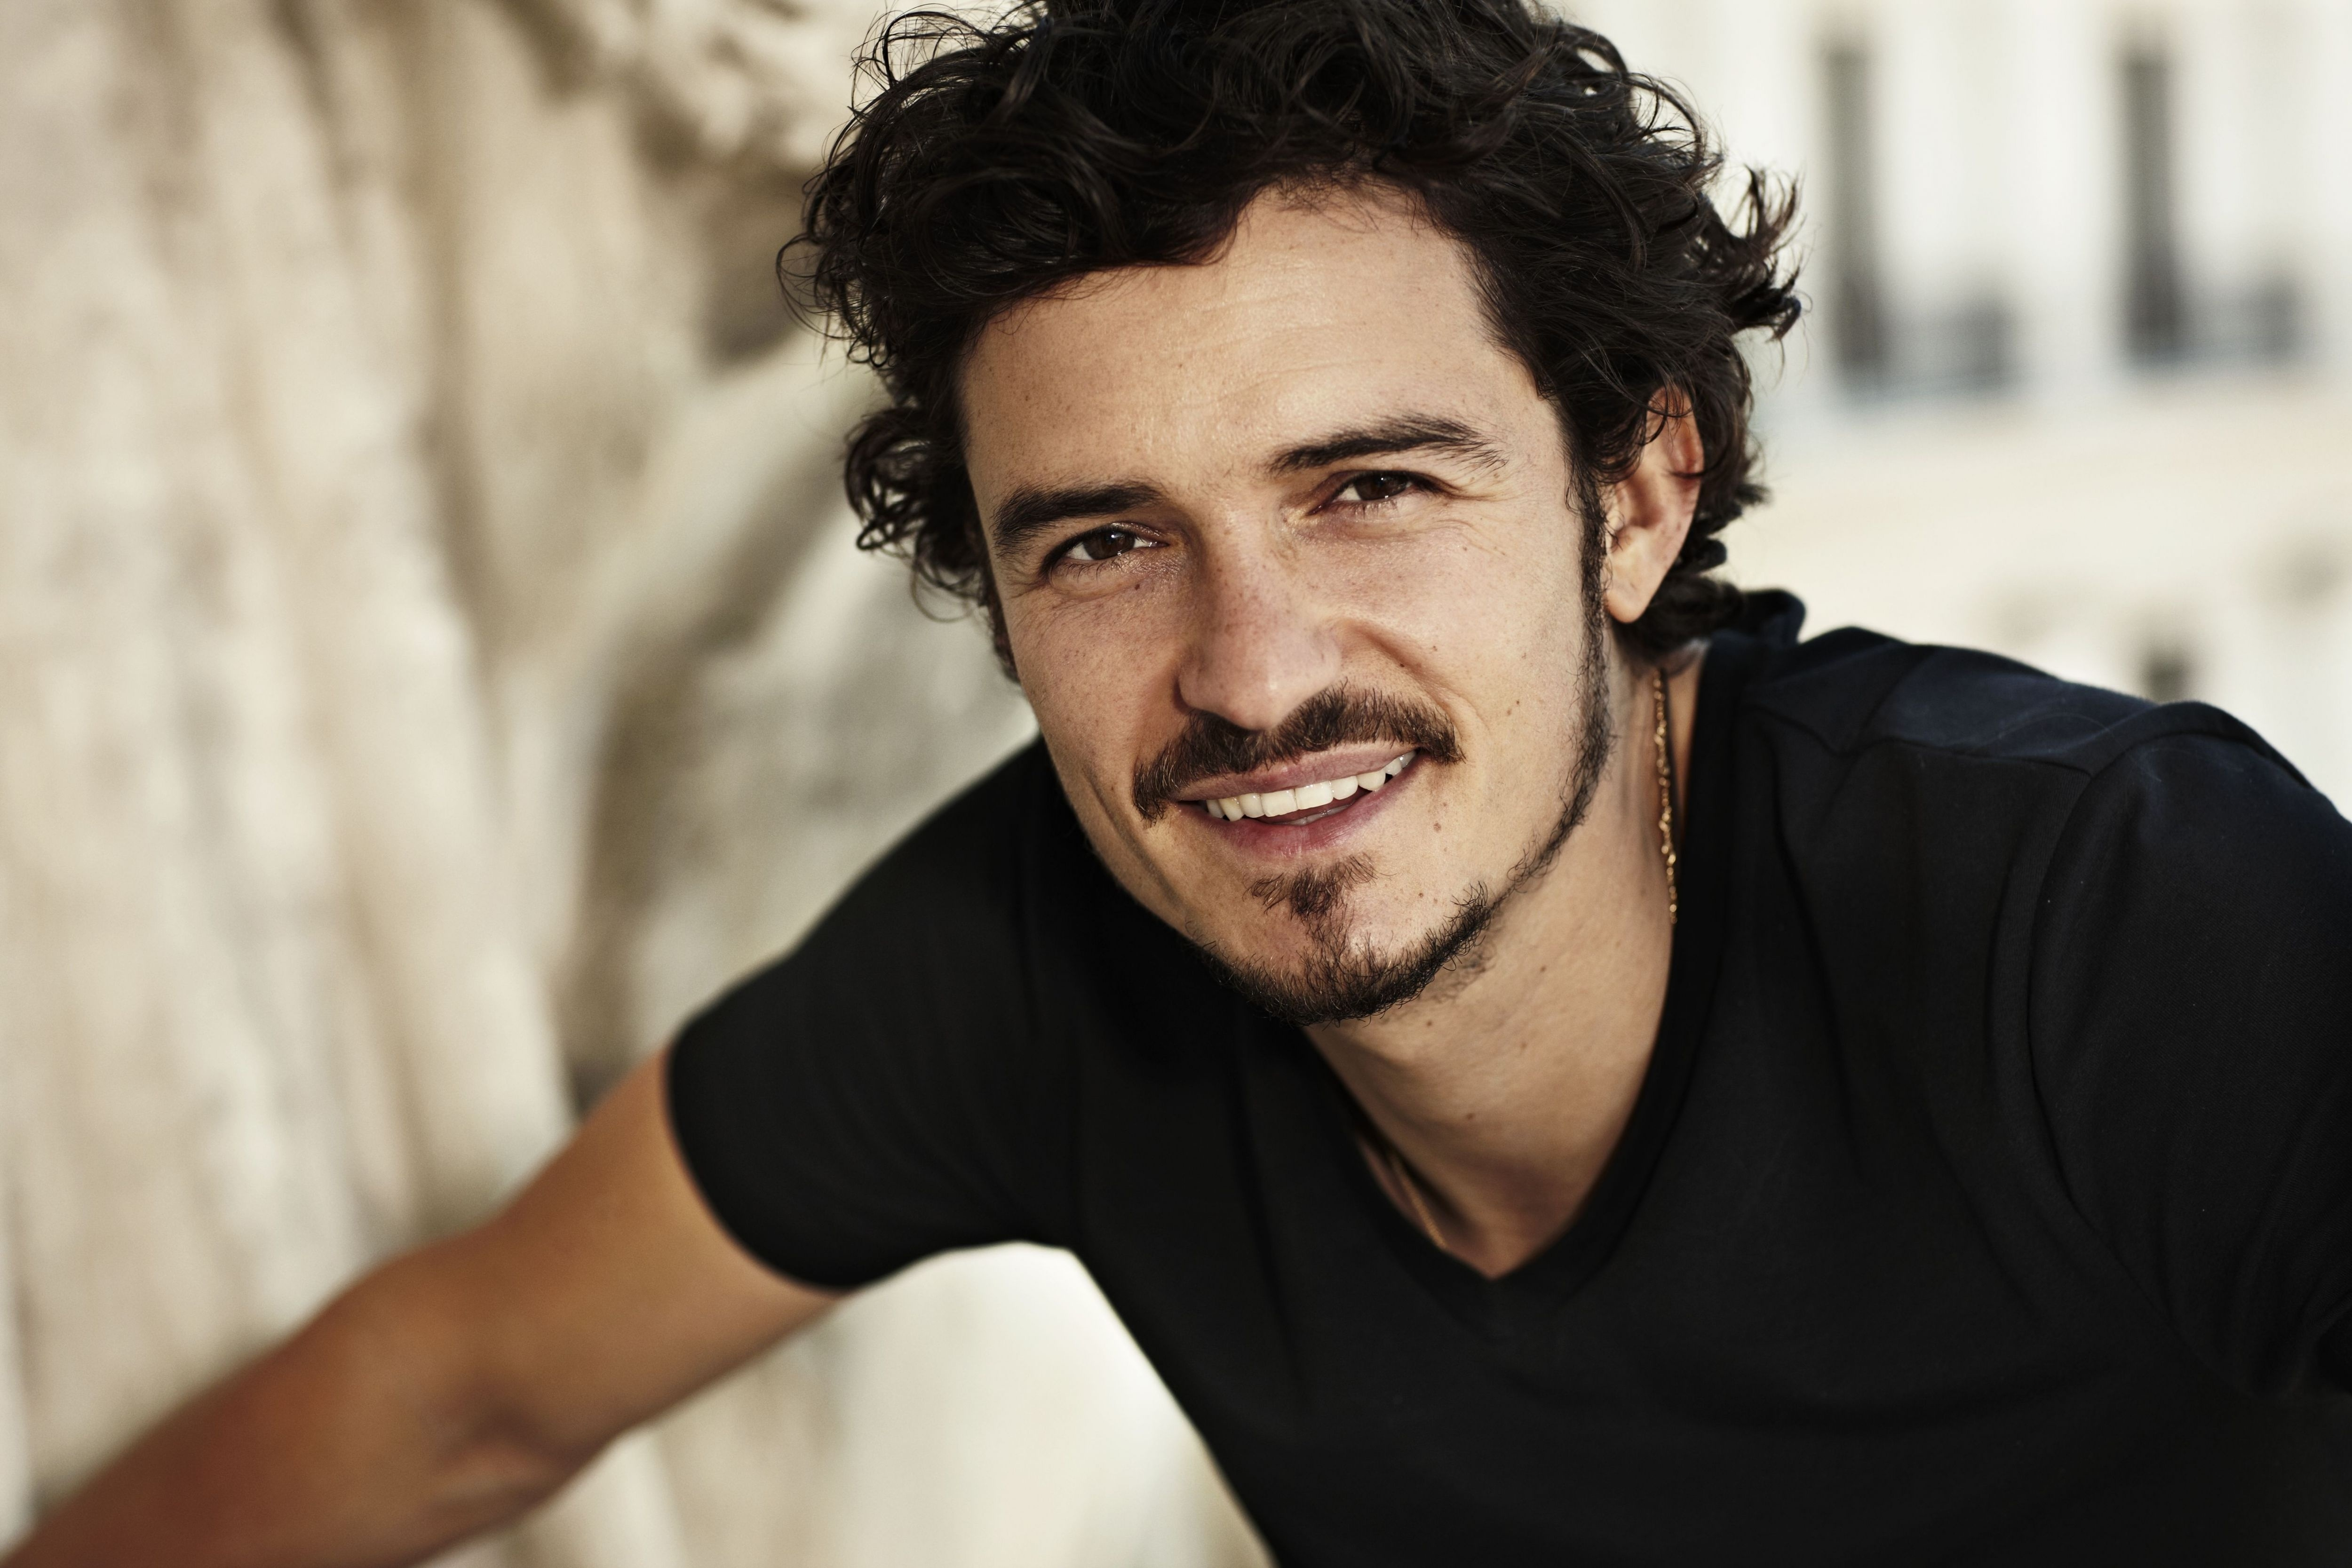 Orlando Bloom Wallpapers High Resolution and Quality Download Orlando Bloom